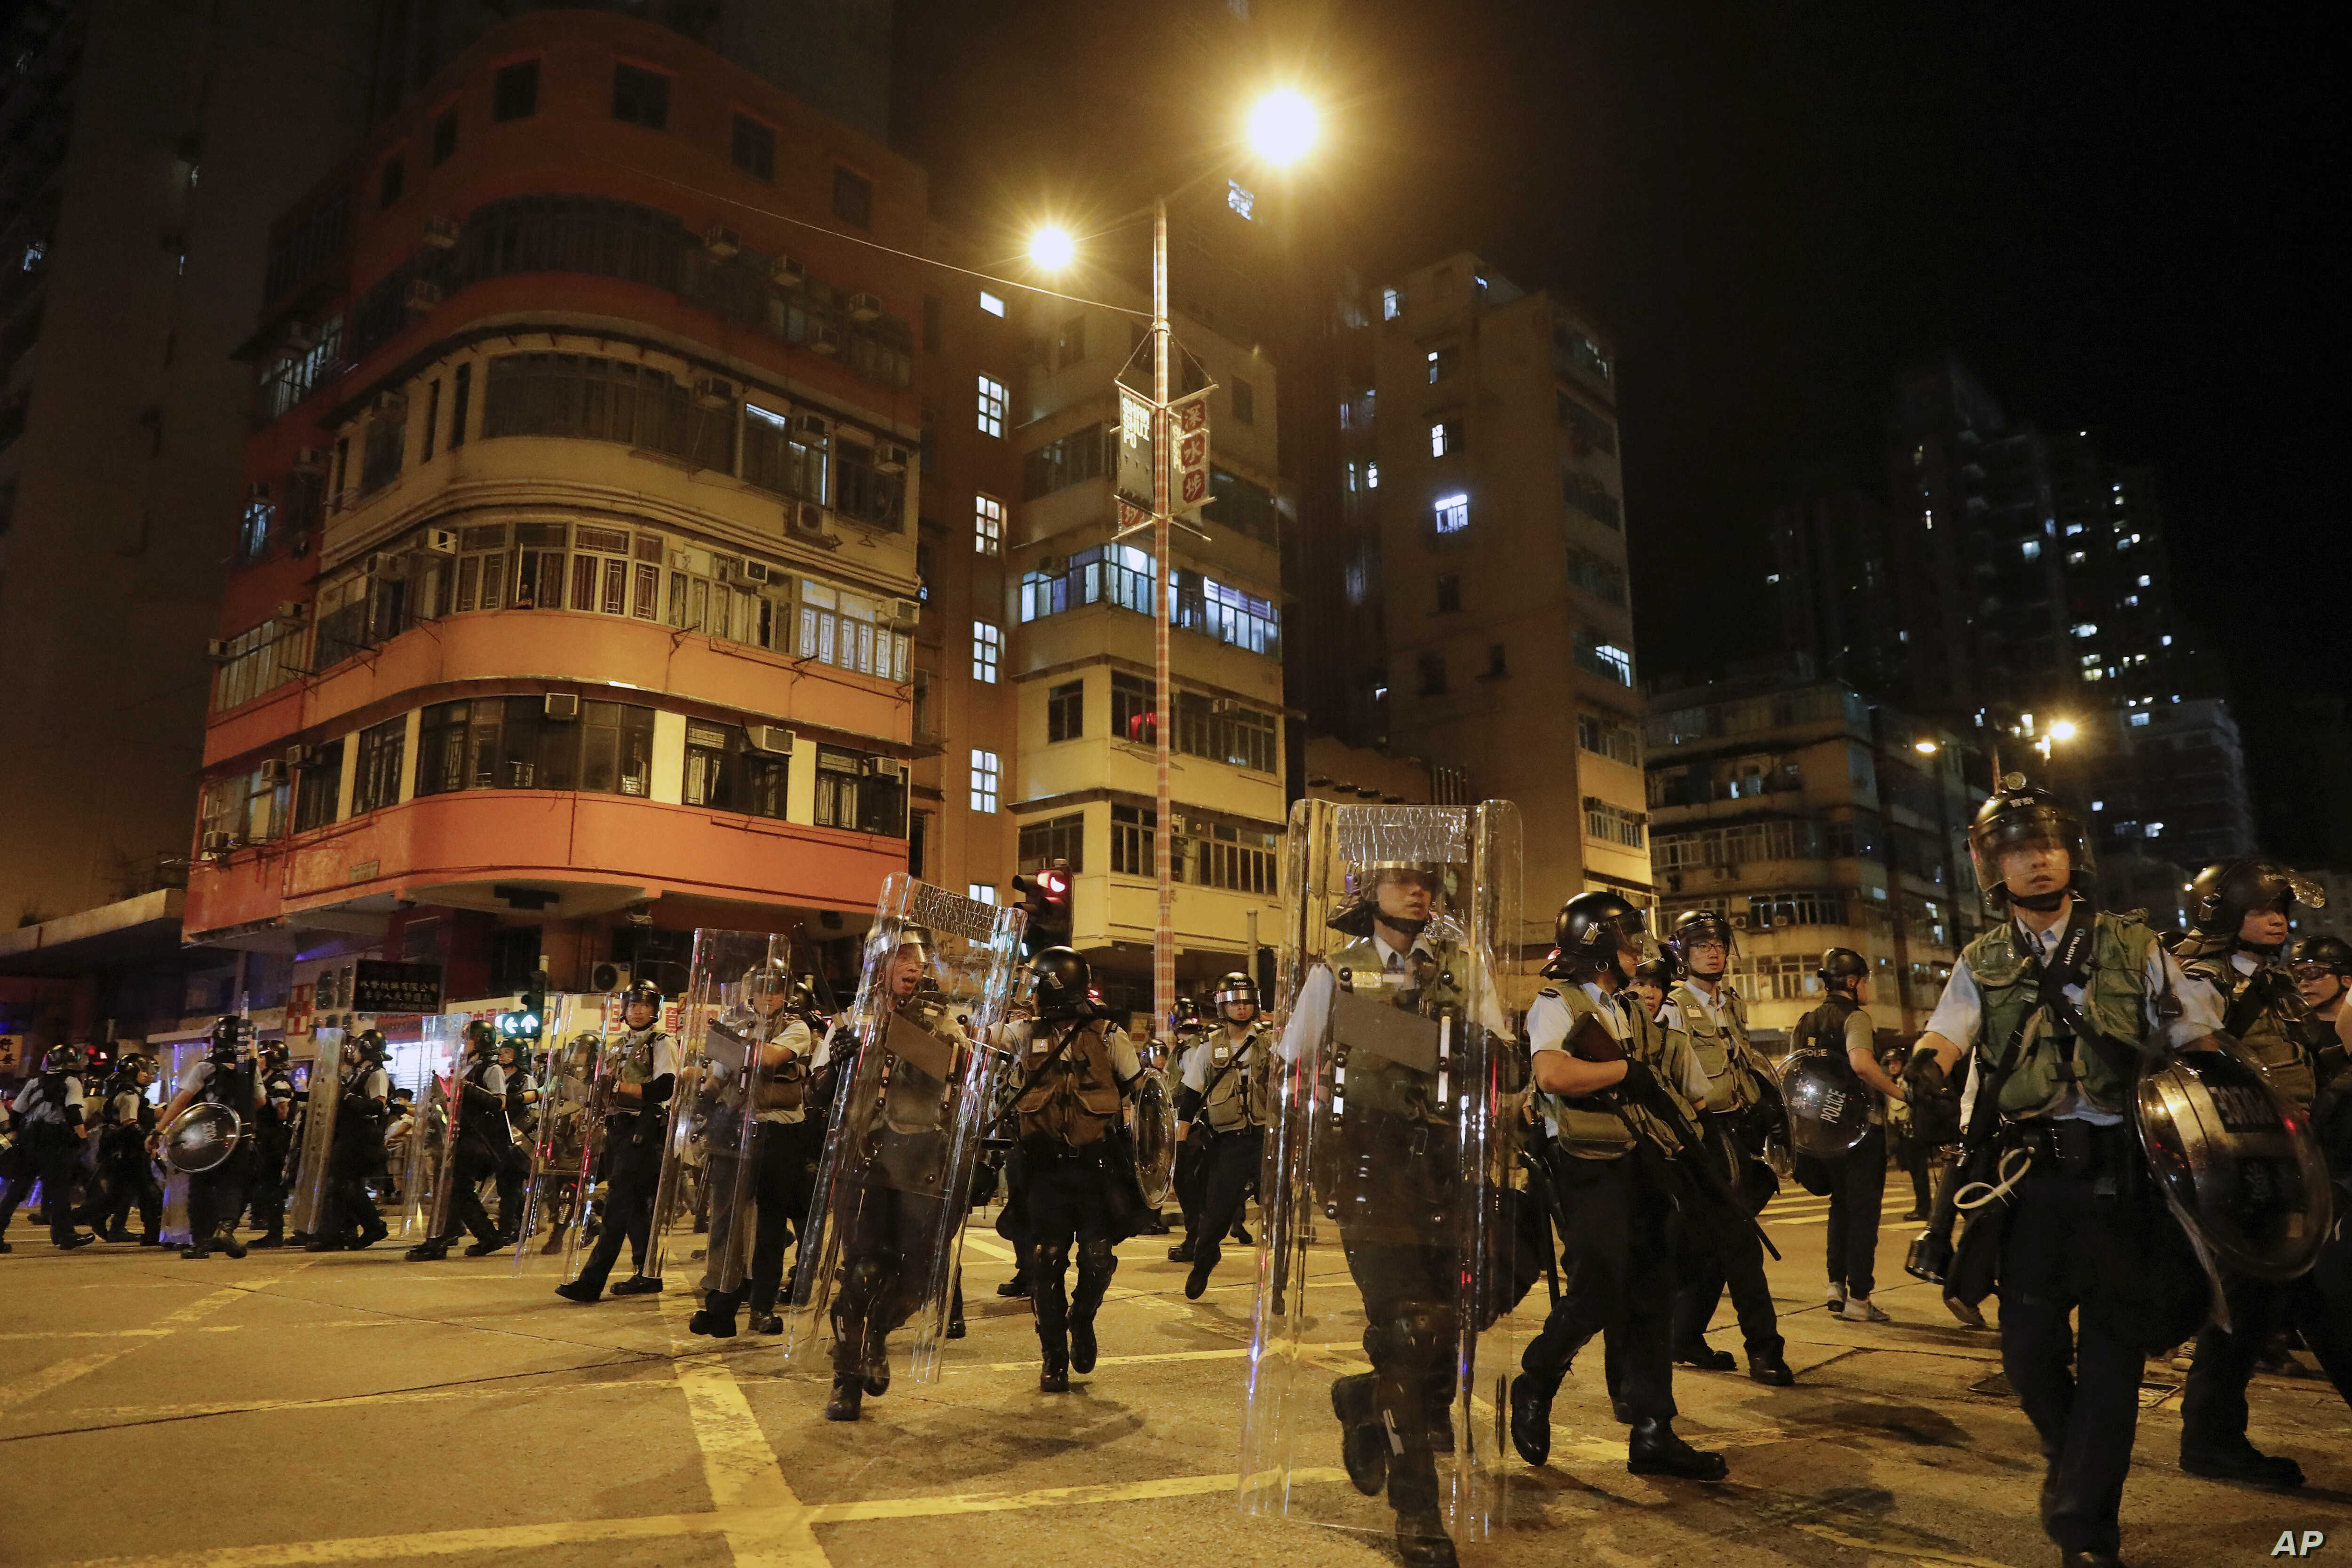 Riot policemen arrive to disperse the residents and protesters at Sham Shui Po district in Hong Kong, Aug. 7, 2019.